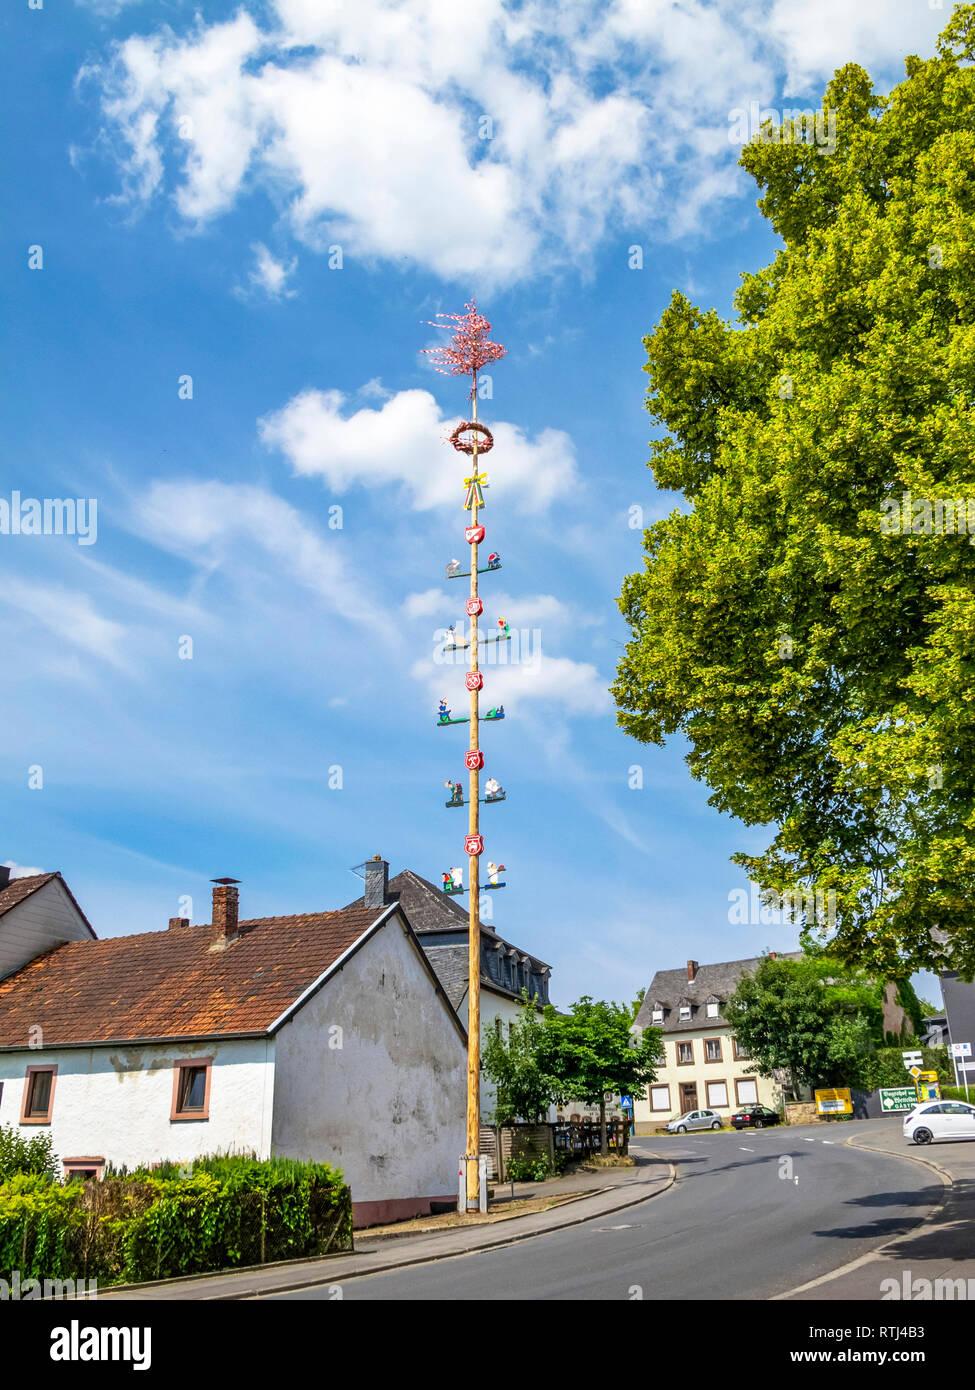 Erected maypole, Maibaum in July, Schoenecken, Rhineland-Palatinate, Germany decorated with emblems depicting local crafts and industry - Stock Image